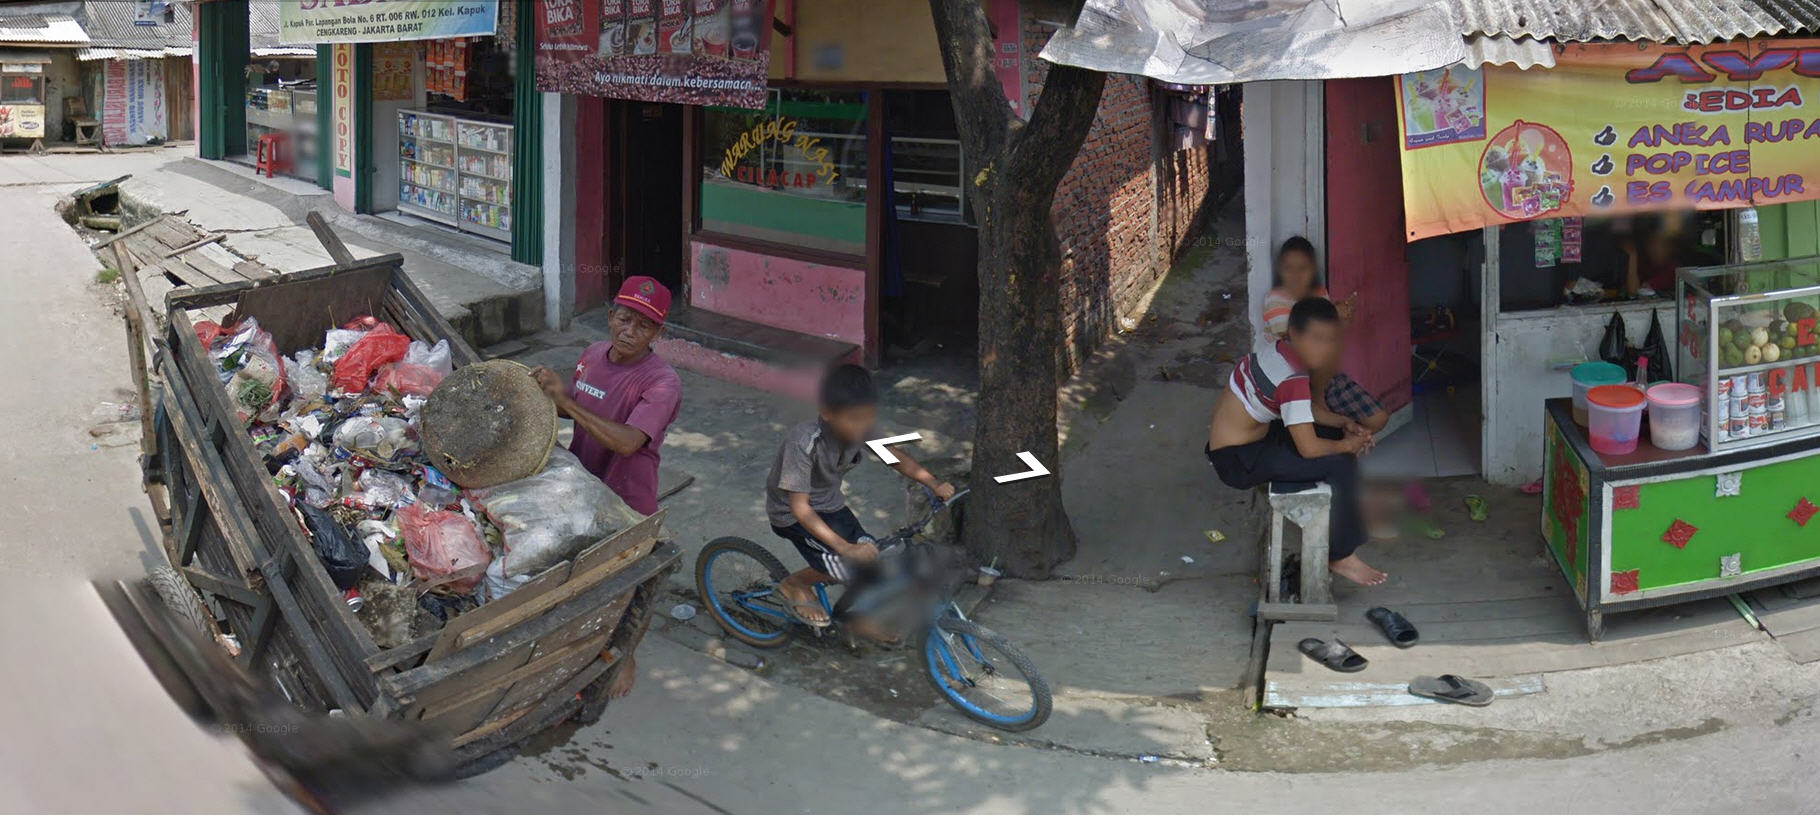 Google Street View Fails To Blur This Indonesian Garbage